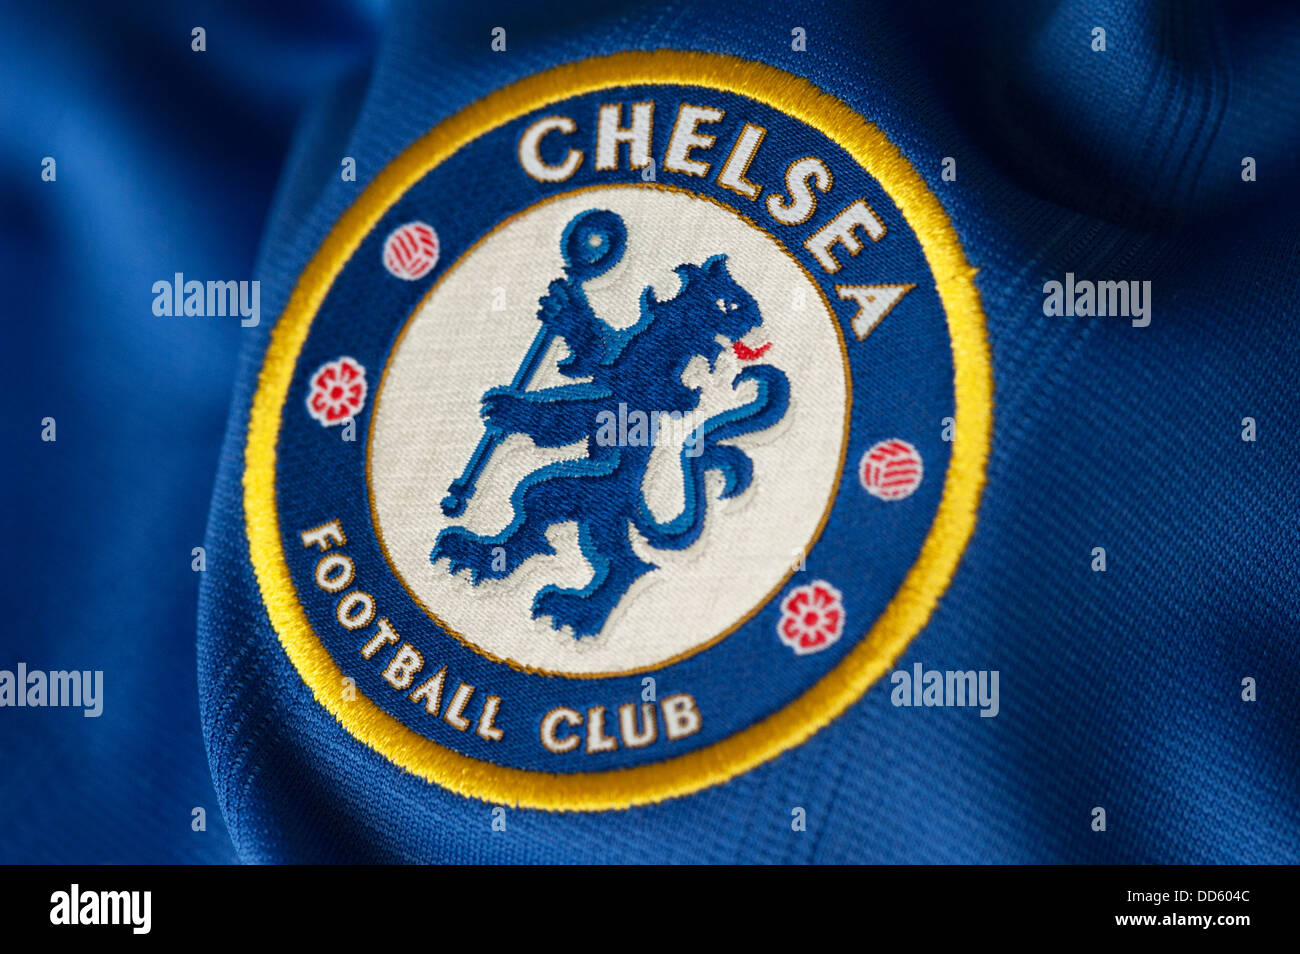 Chelsea Fc High Resolution Stock Photography And Images Alamy